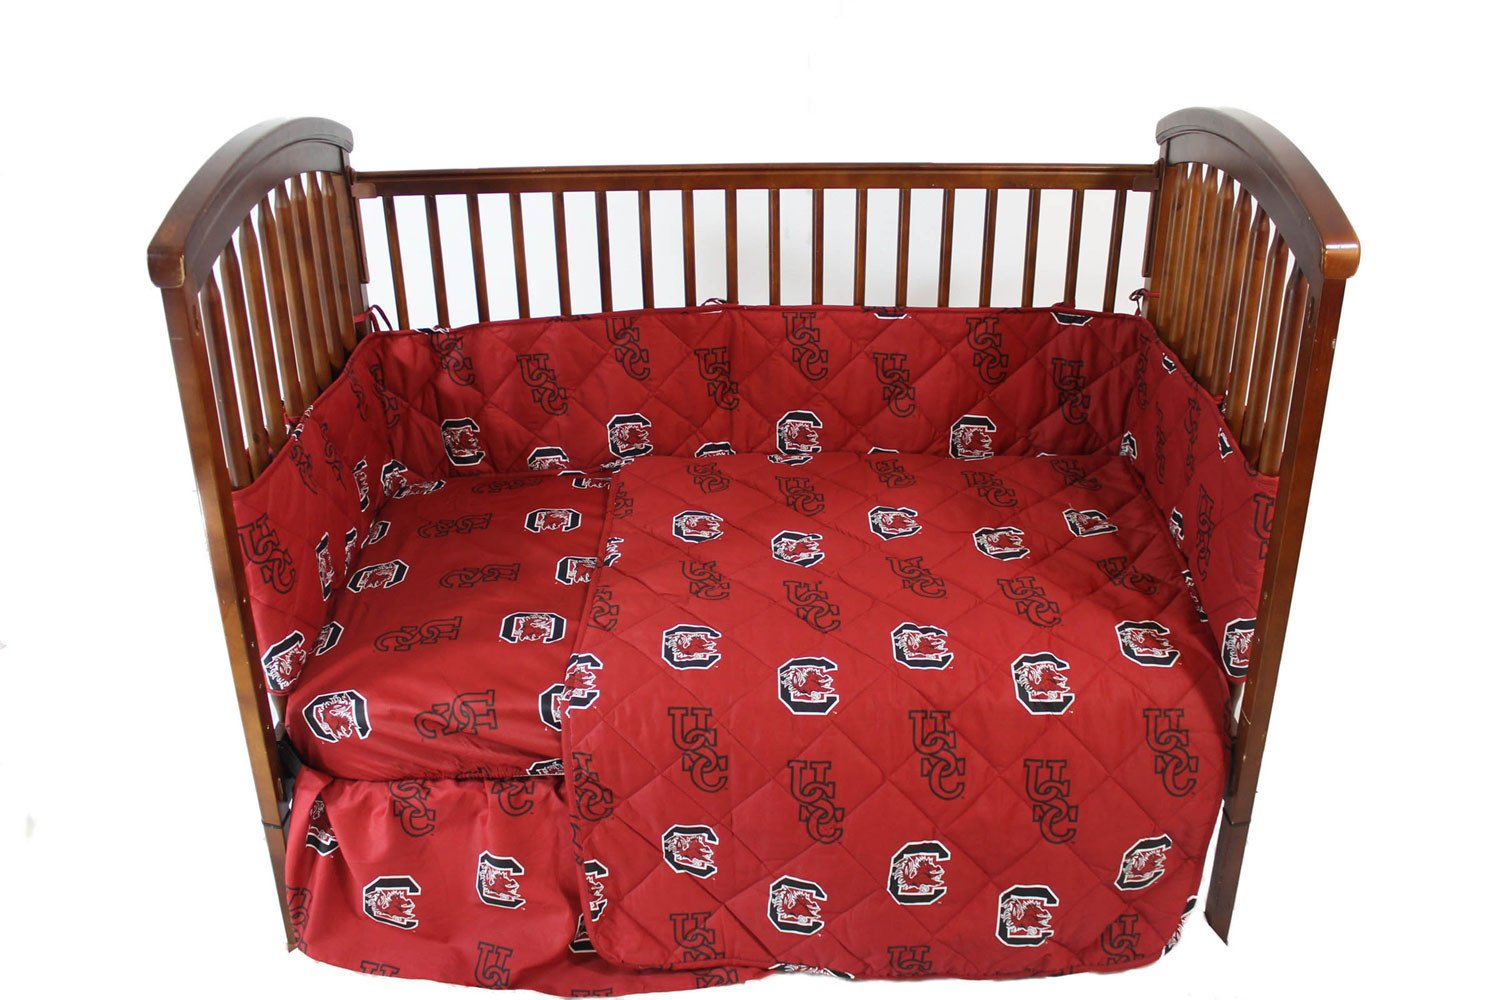 South Carolina 5 piece Baby Crib Set  - SCUCS by College Covers from College Covers